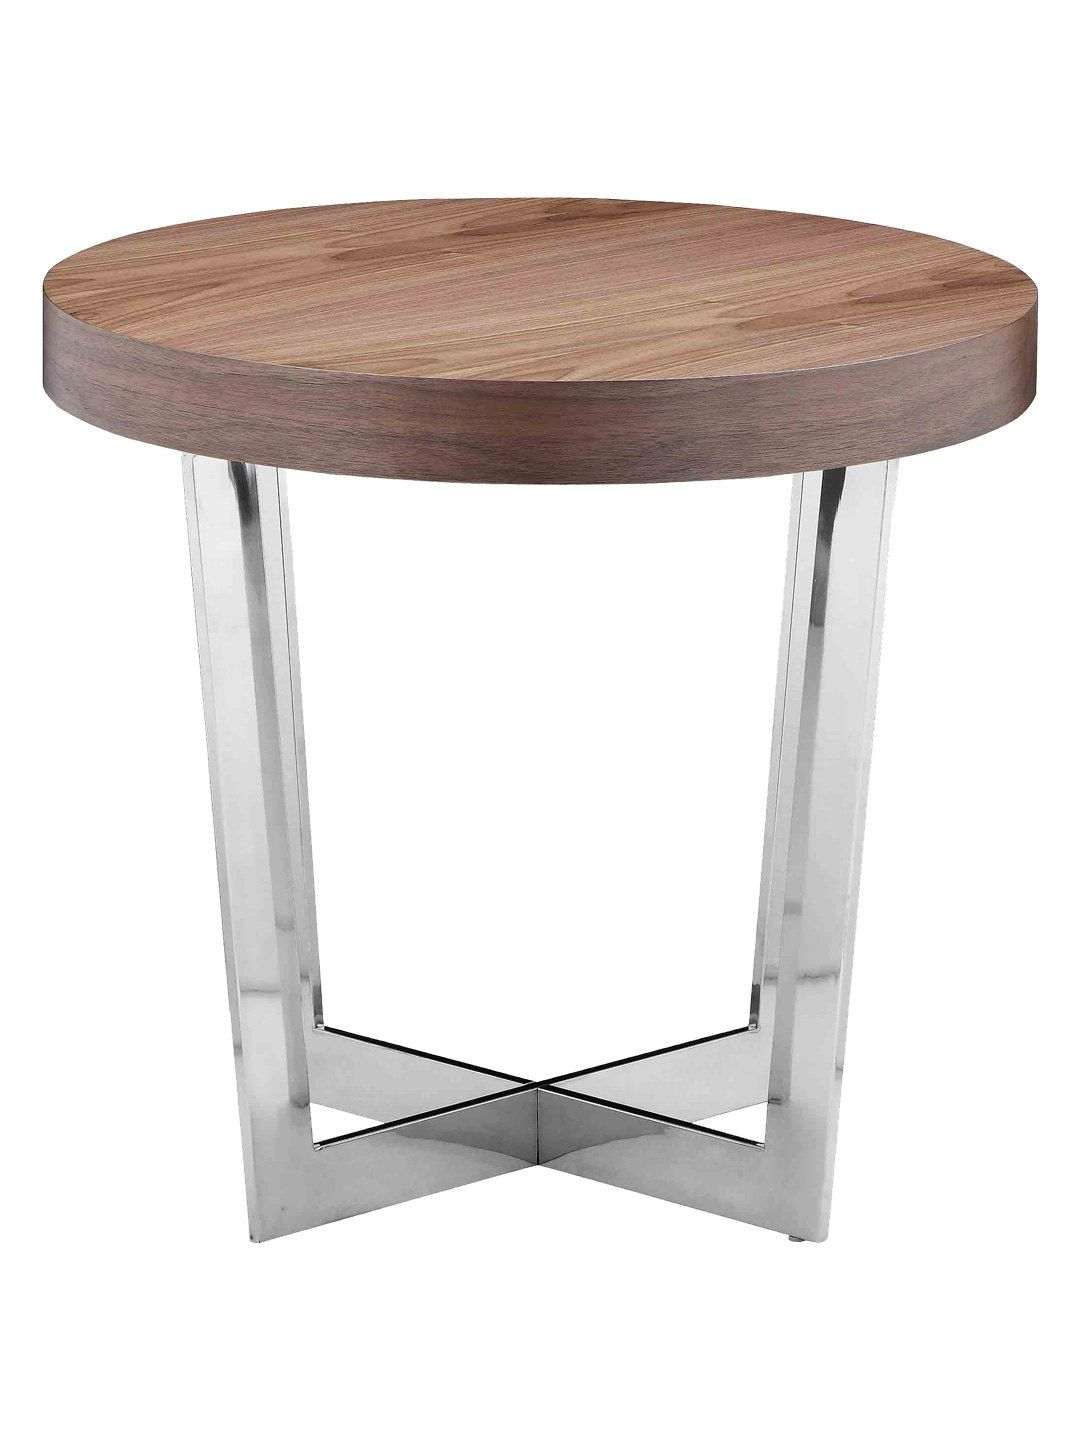 Oyster Side Table By Pangea Home At Gilt Side Table Modern Side Table Table [ 1440 x 1080 Pixel ]